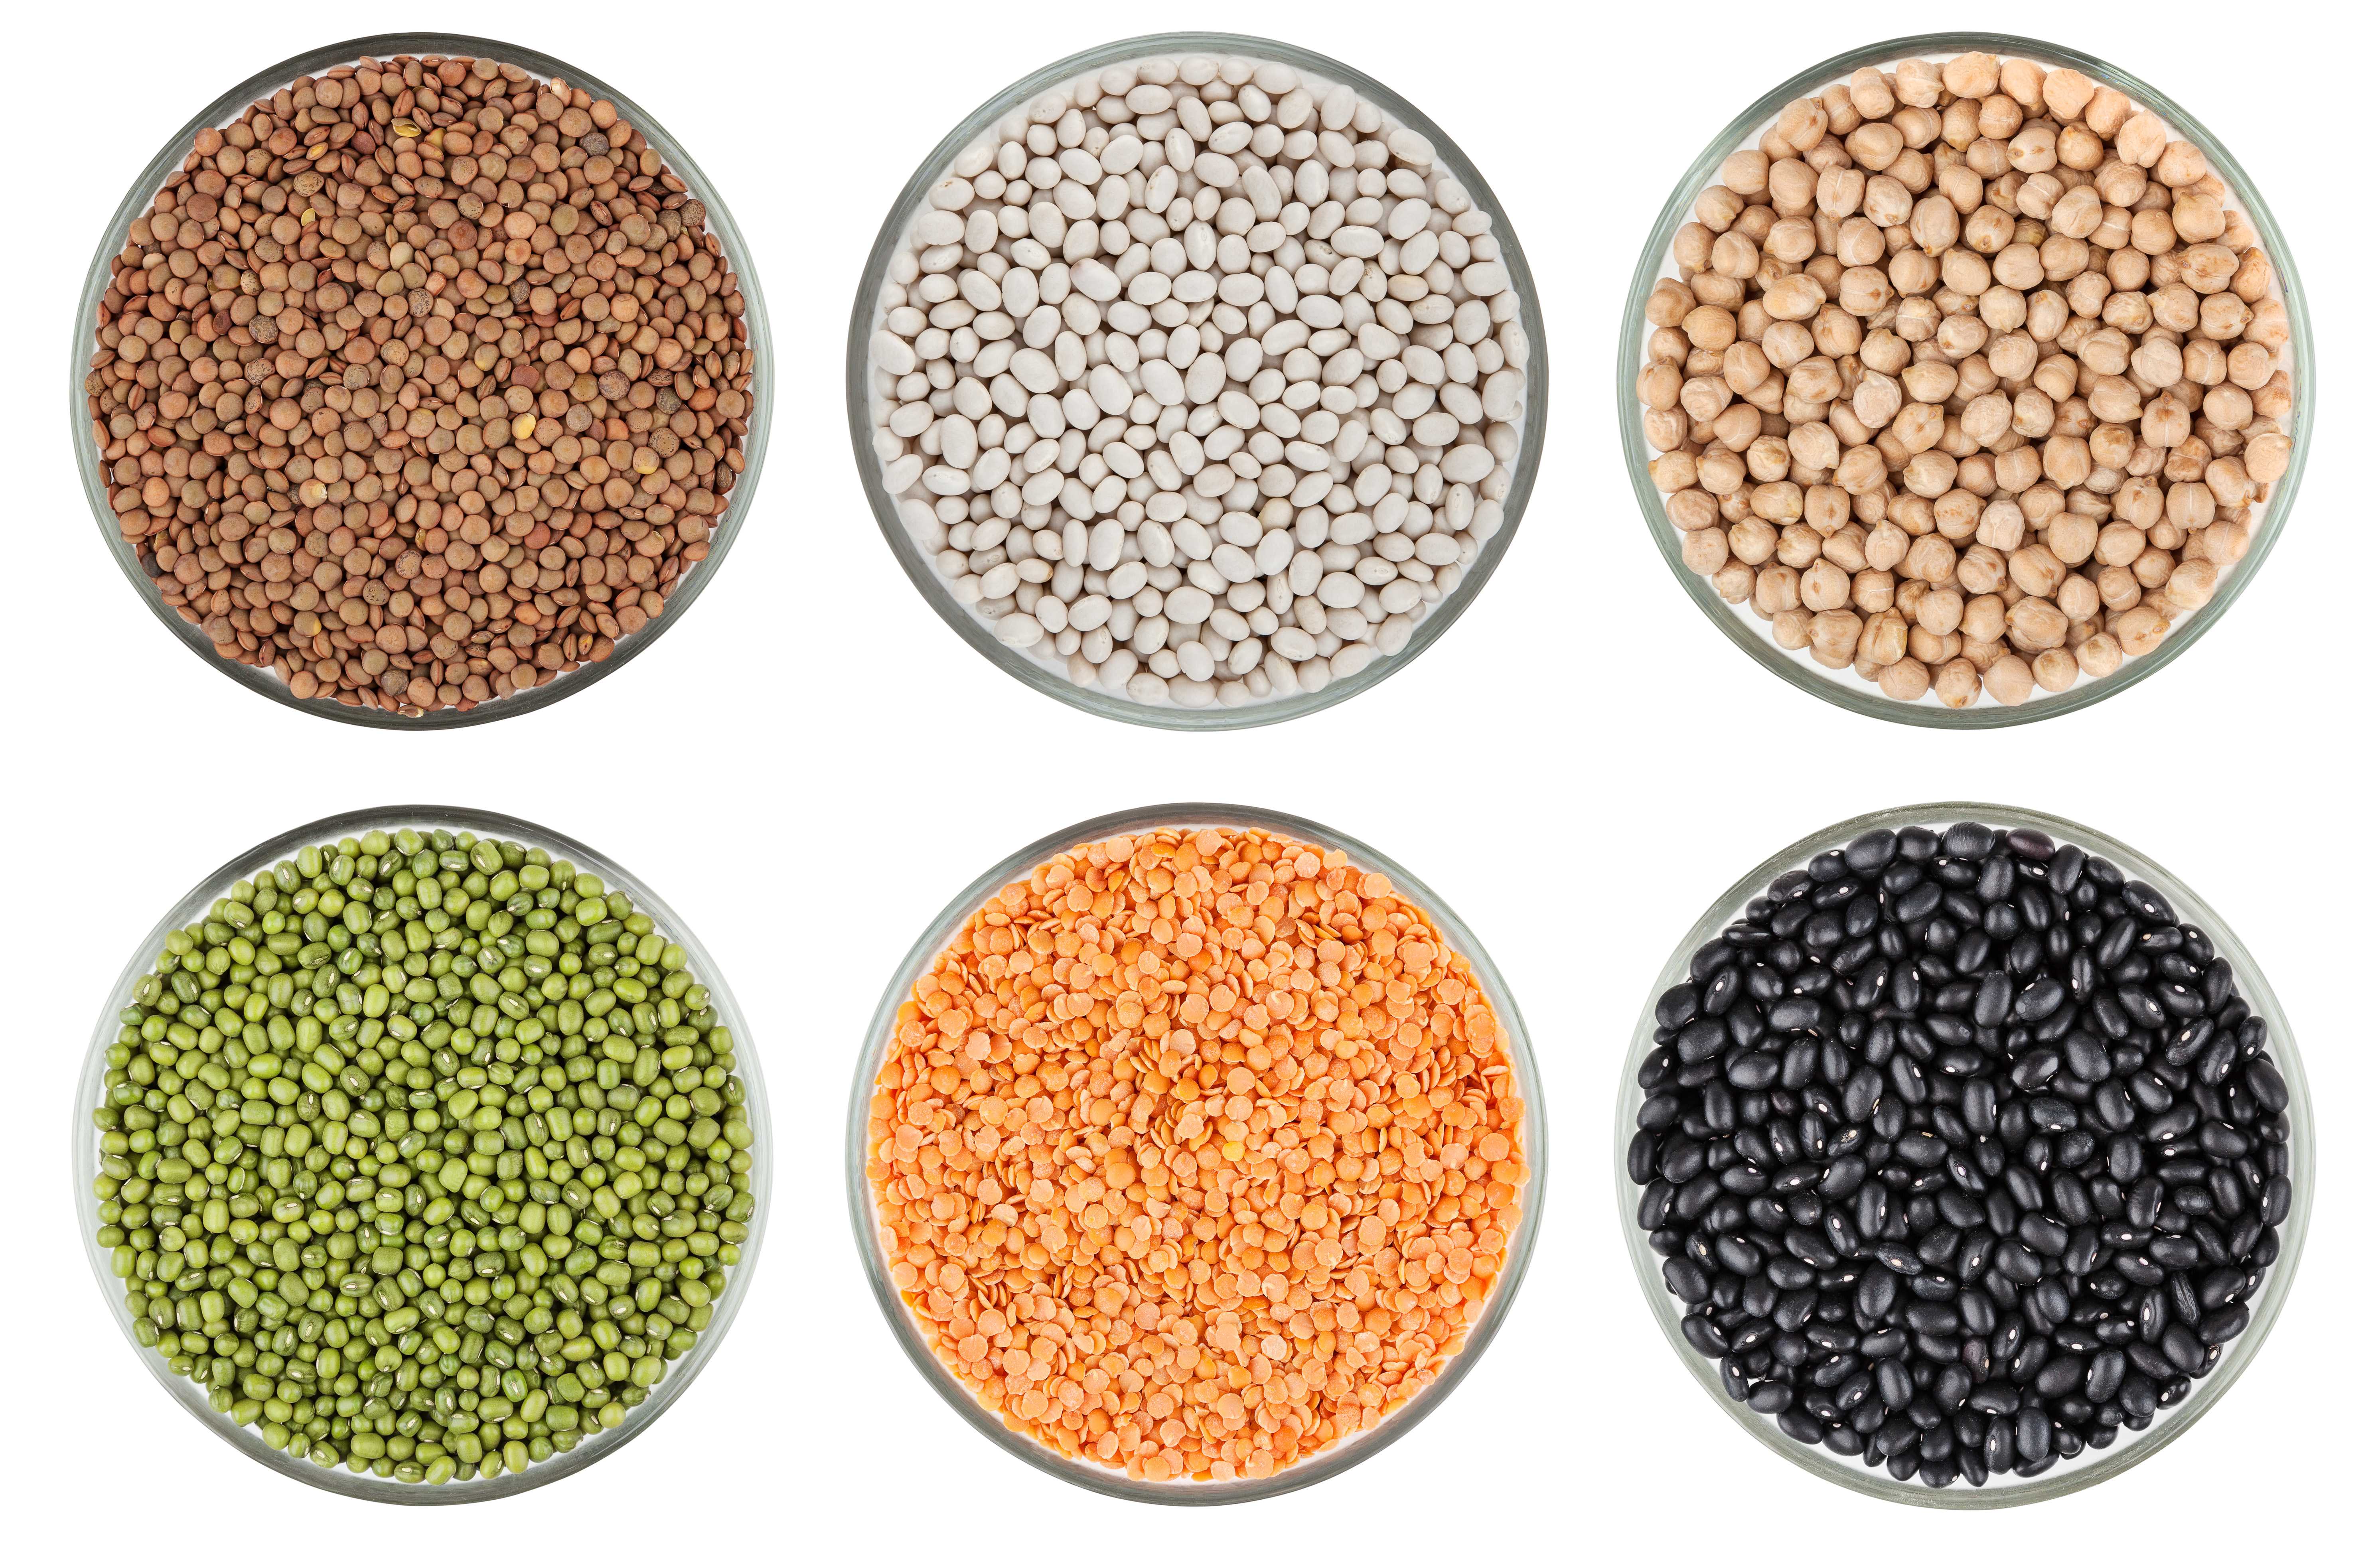 Bowls of lentils and beans.